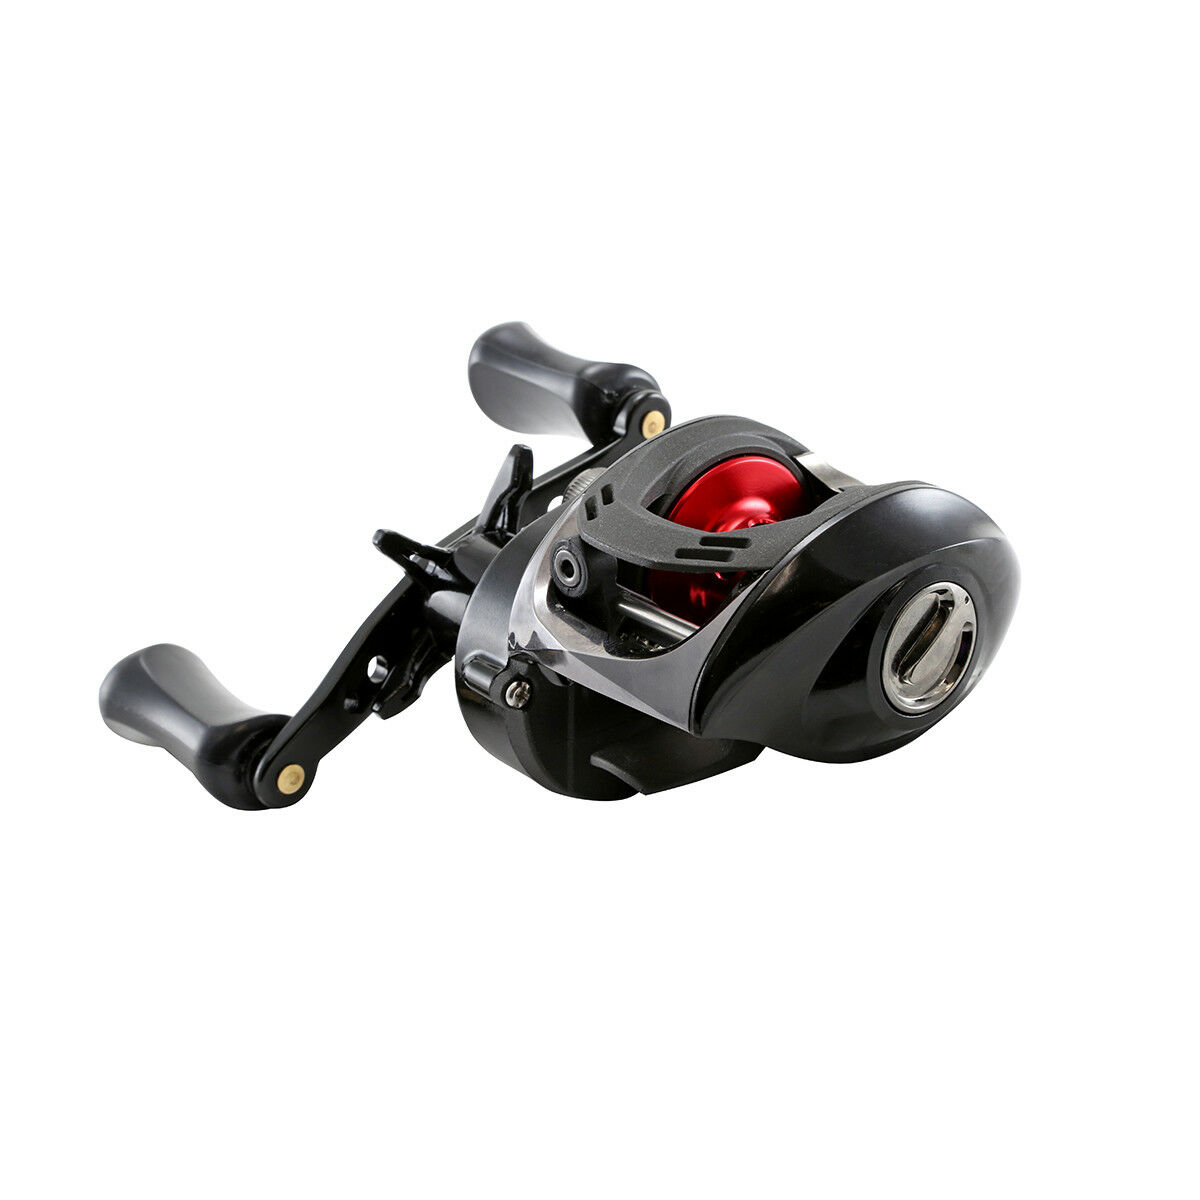 Okuma C-266WLX Ceymar Low Profile Baitcaster Reel LEFT HAND Carp Fishing - 54295